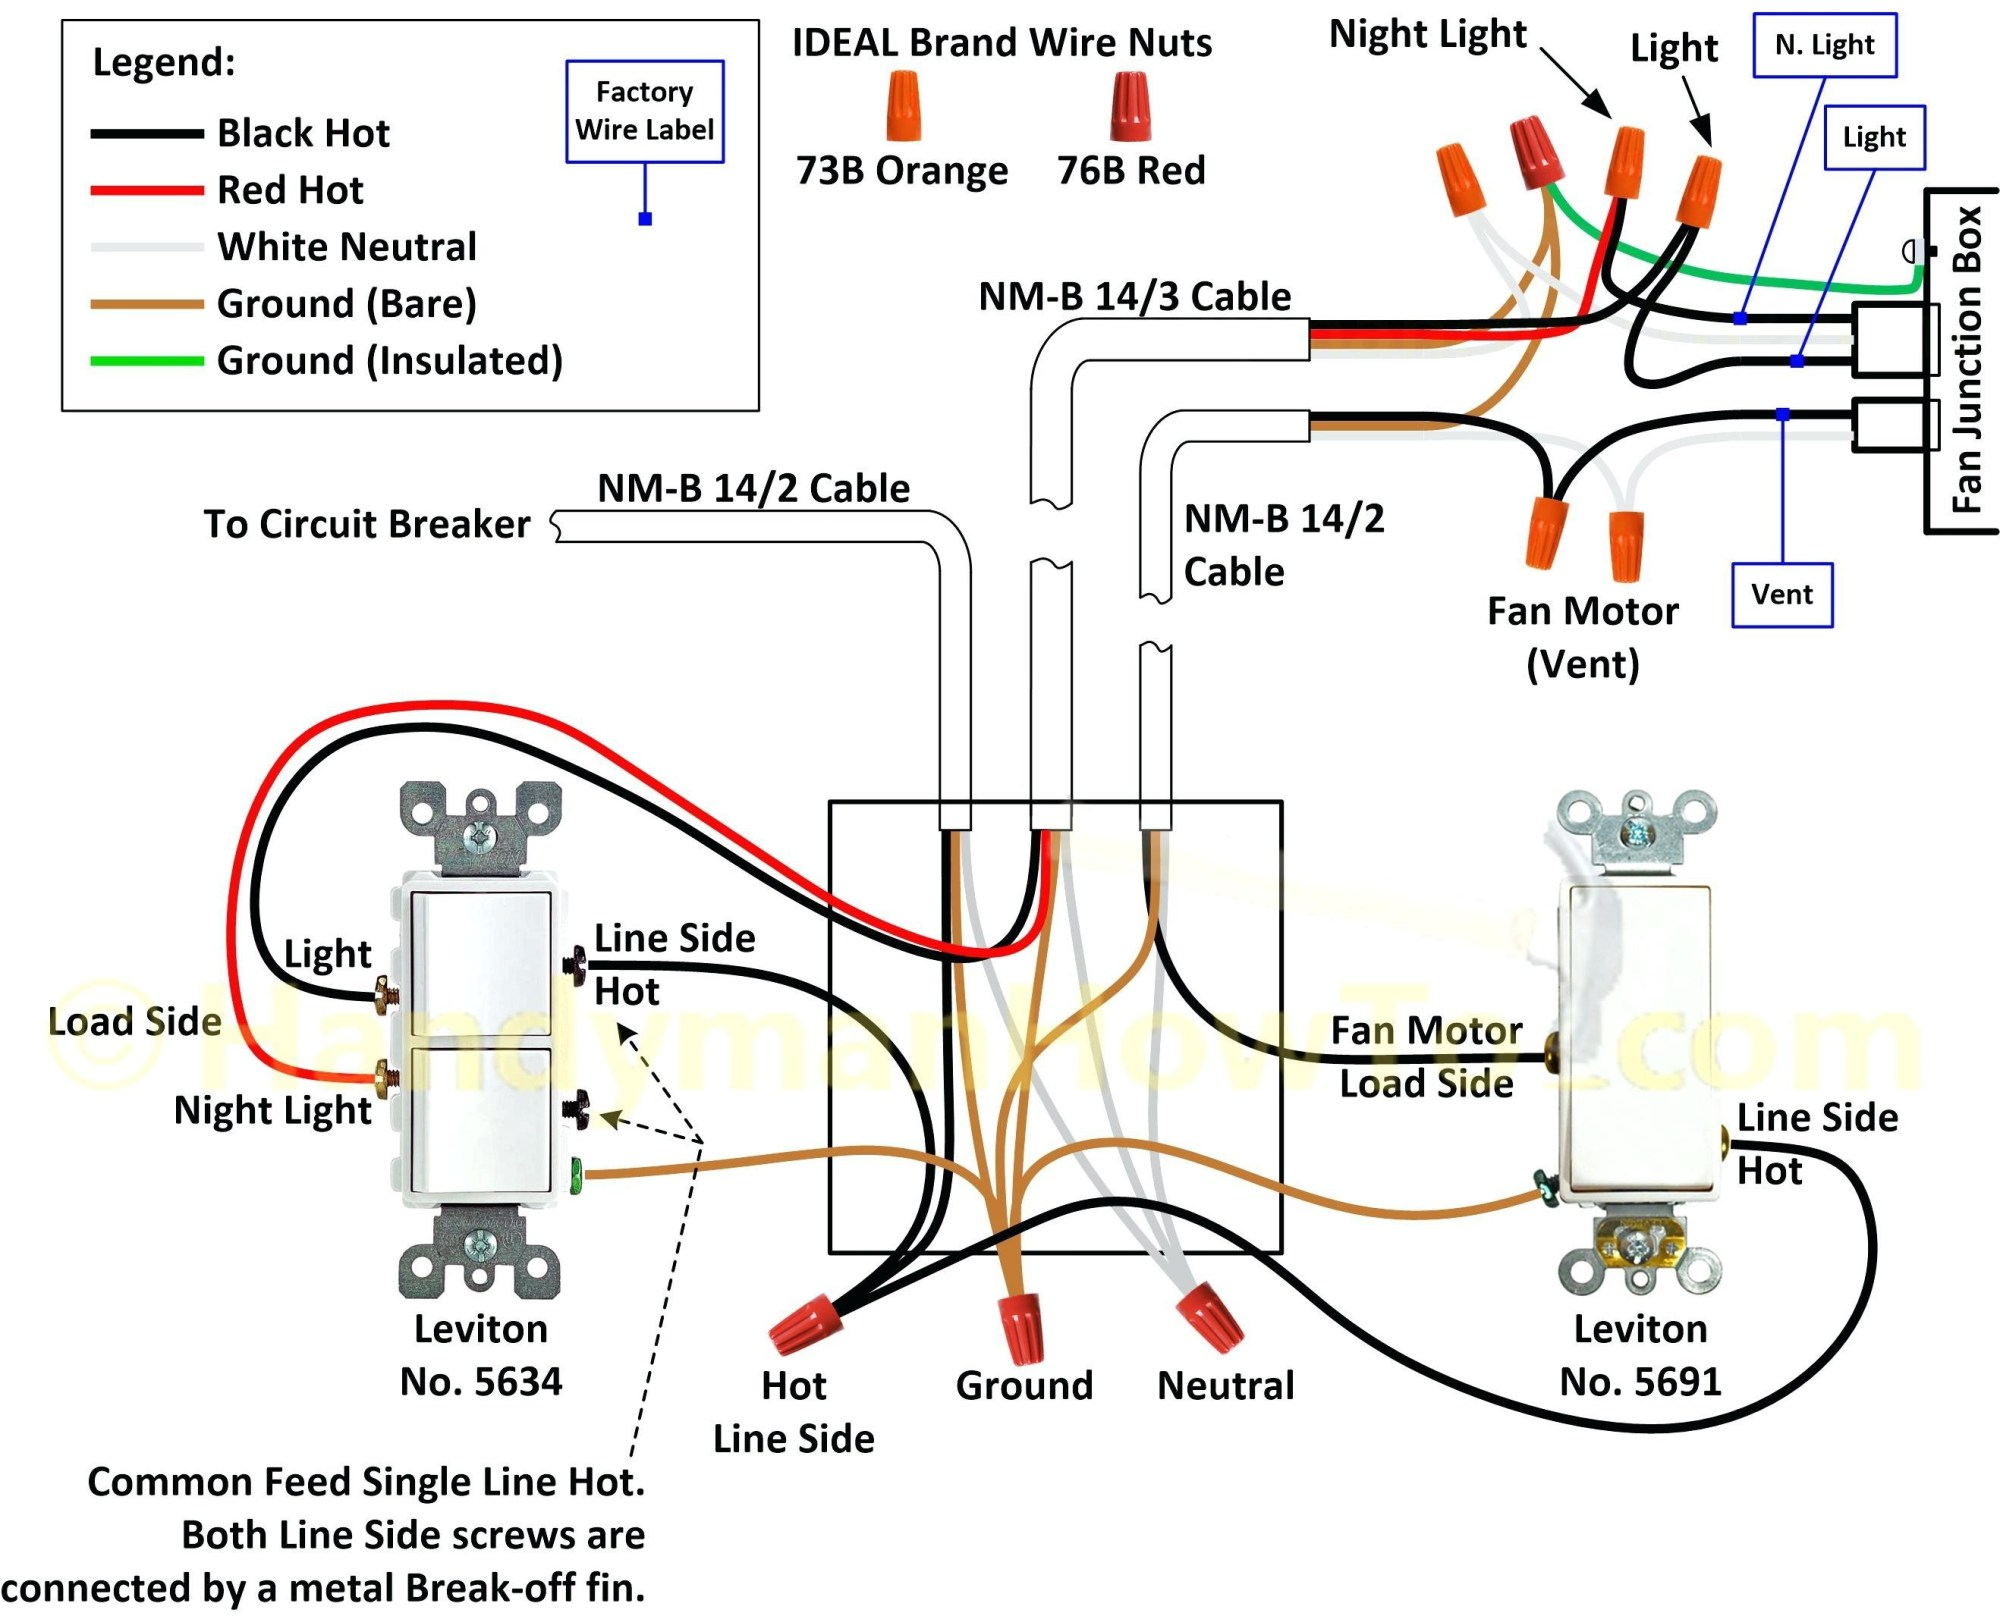 hight resolution of westinghouse fan motor wiring diagram wire management wiring diagram westinghouse desk fan wiring diagram